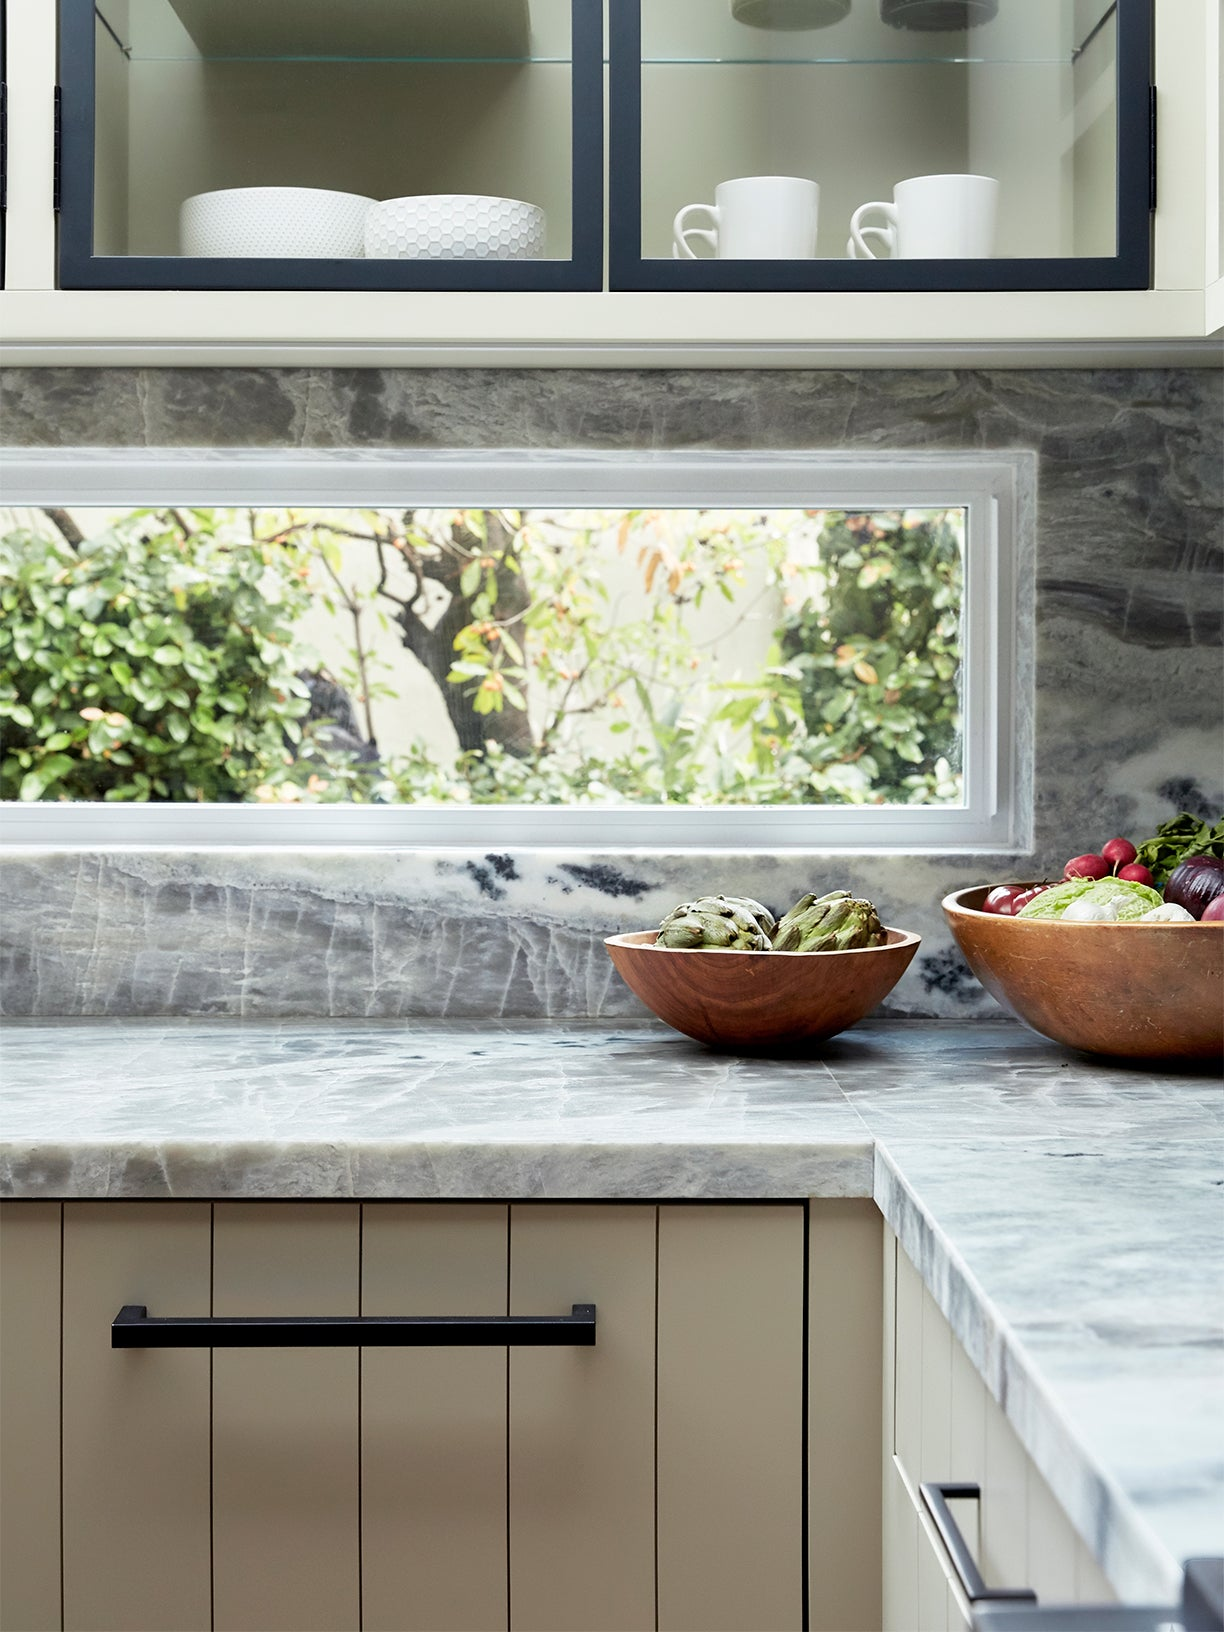 00-FEATURE-backsplash-window-cutout-domino